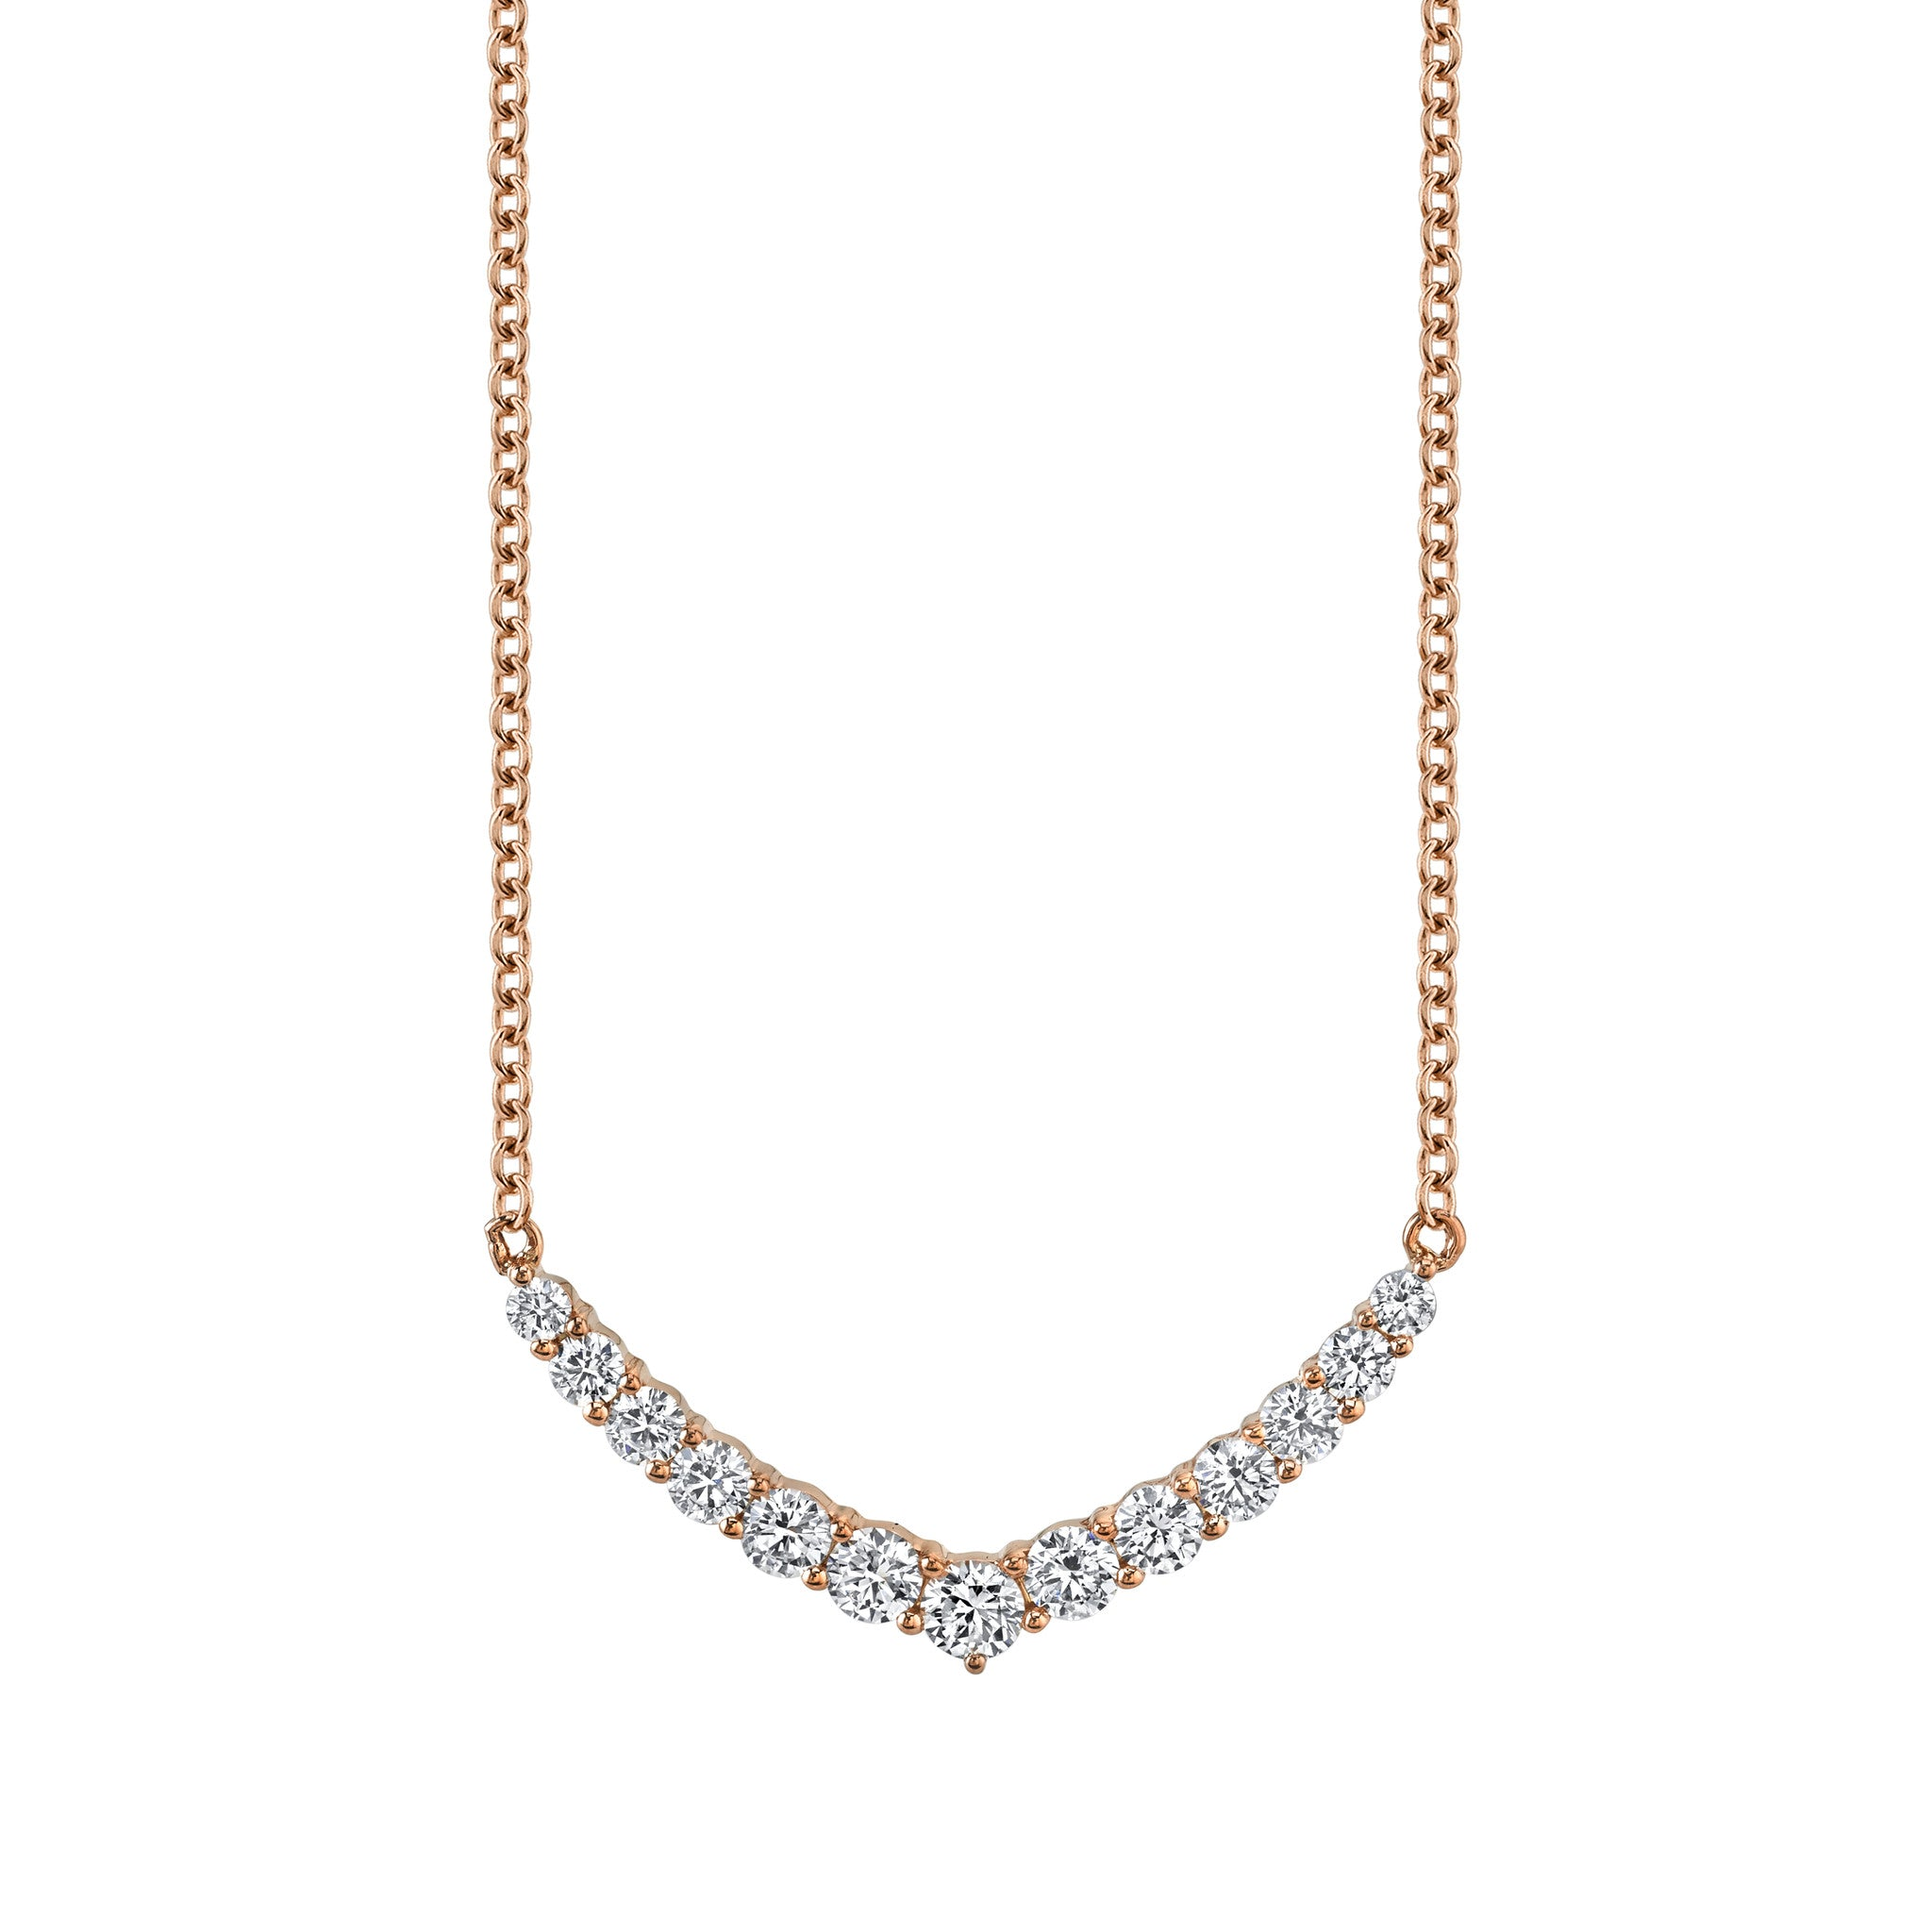 ANITA KO - CURVED V NECKLACE